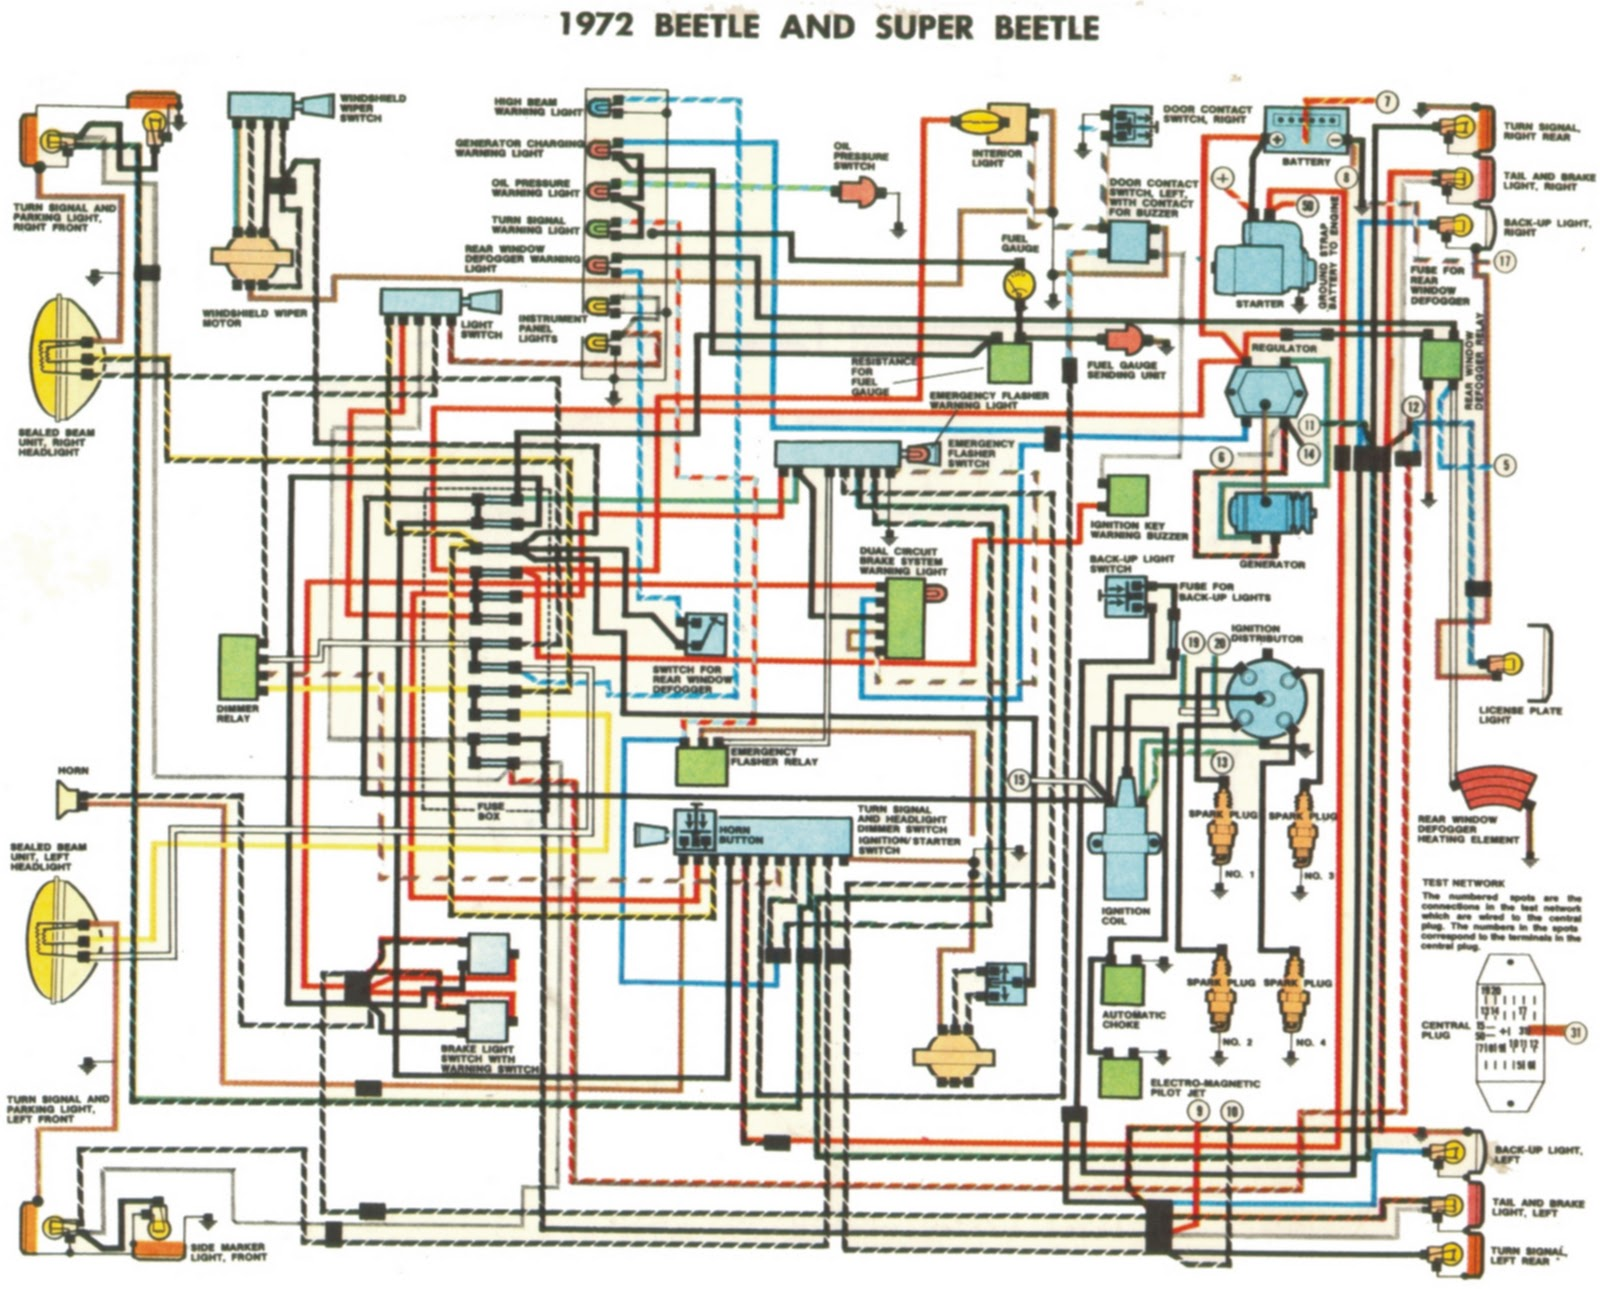 1972 beetle and super beetle wiring diagrams vw beetle wiring diagram 1971 on vw download wirning diagrams 1968 volkswagen beetle wiring harness at mifinder.co